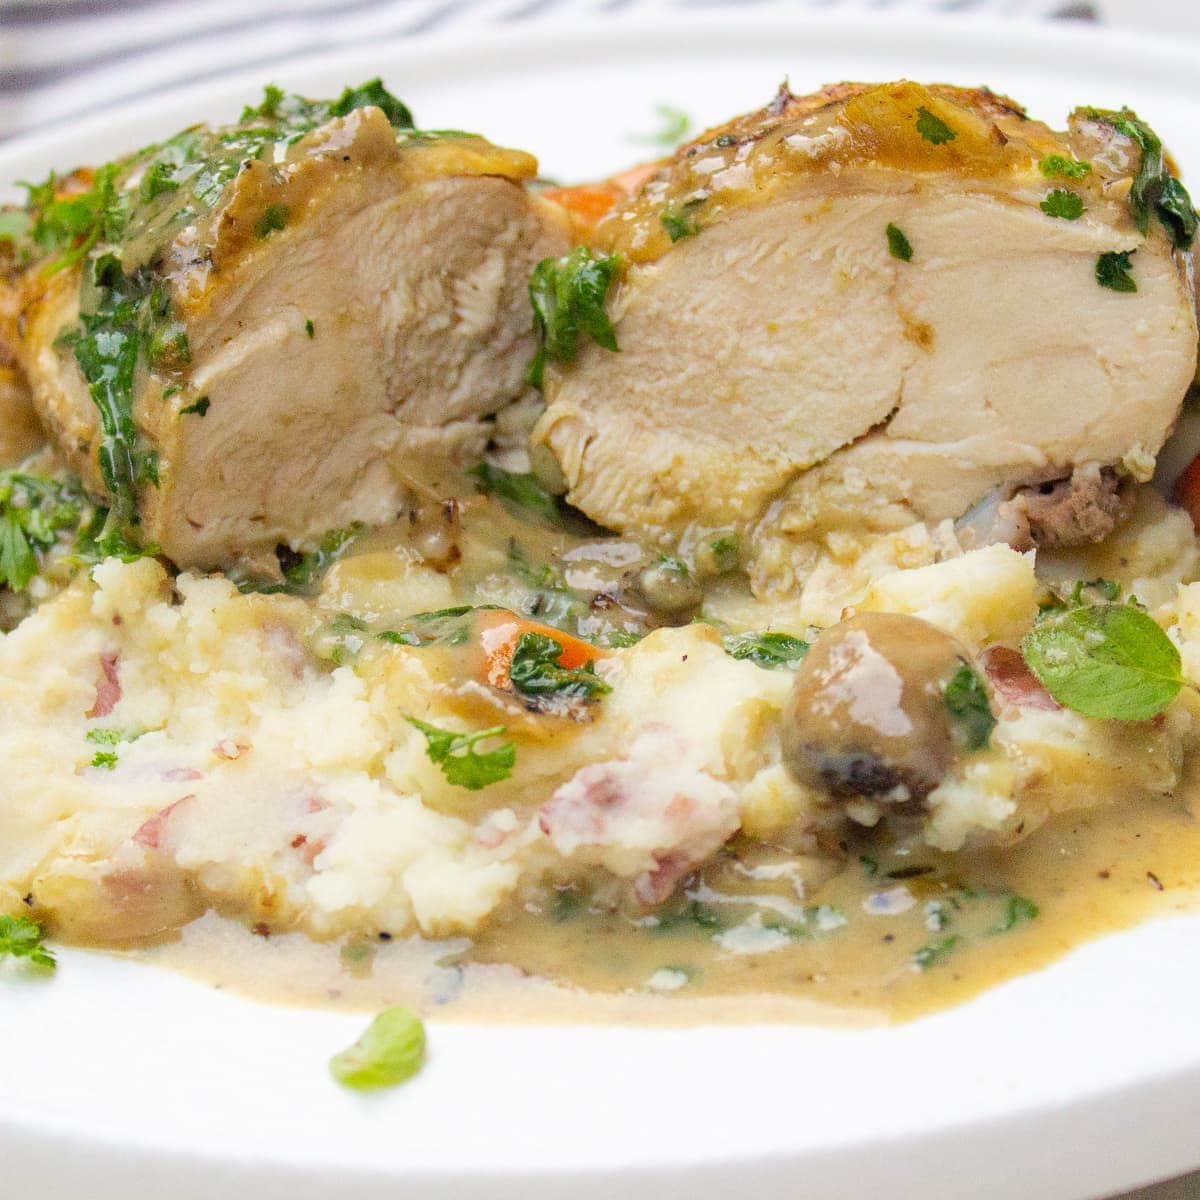 piece of chicken fricassee on mashed potatoes